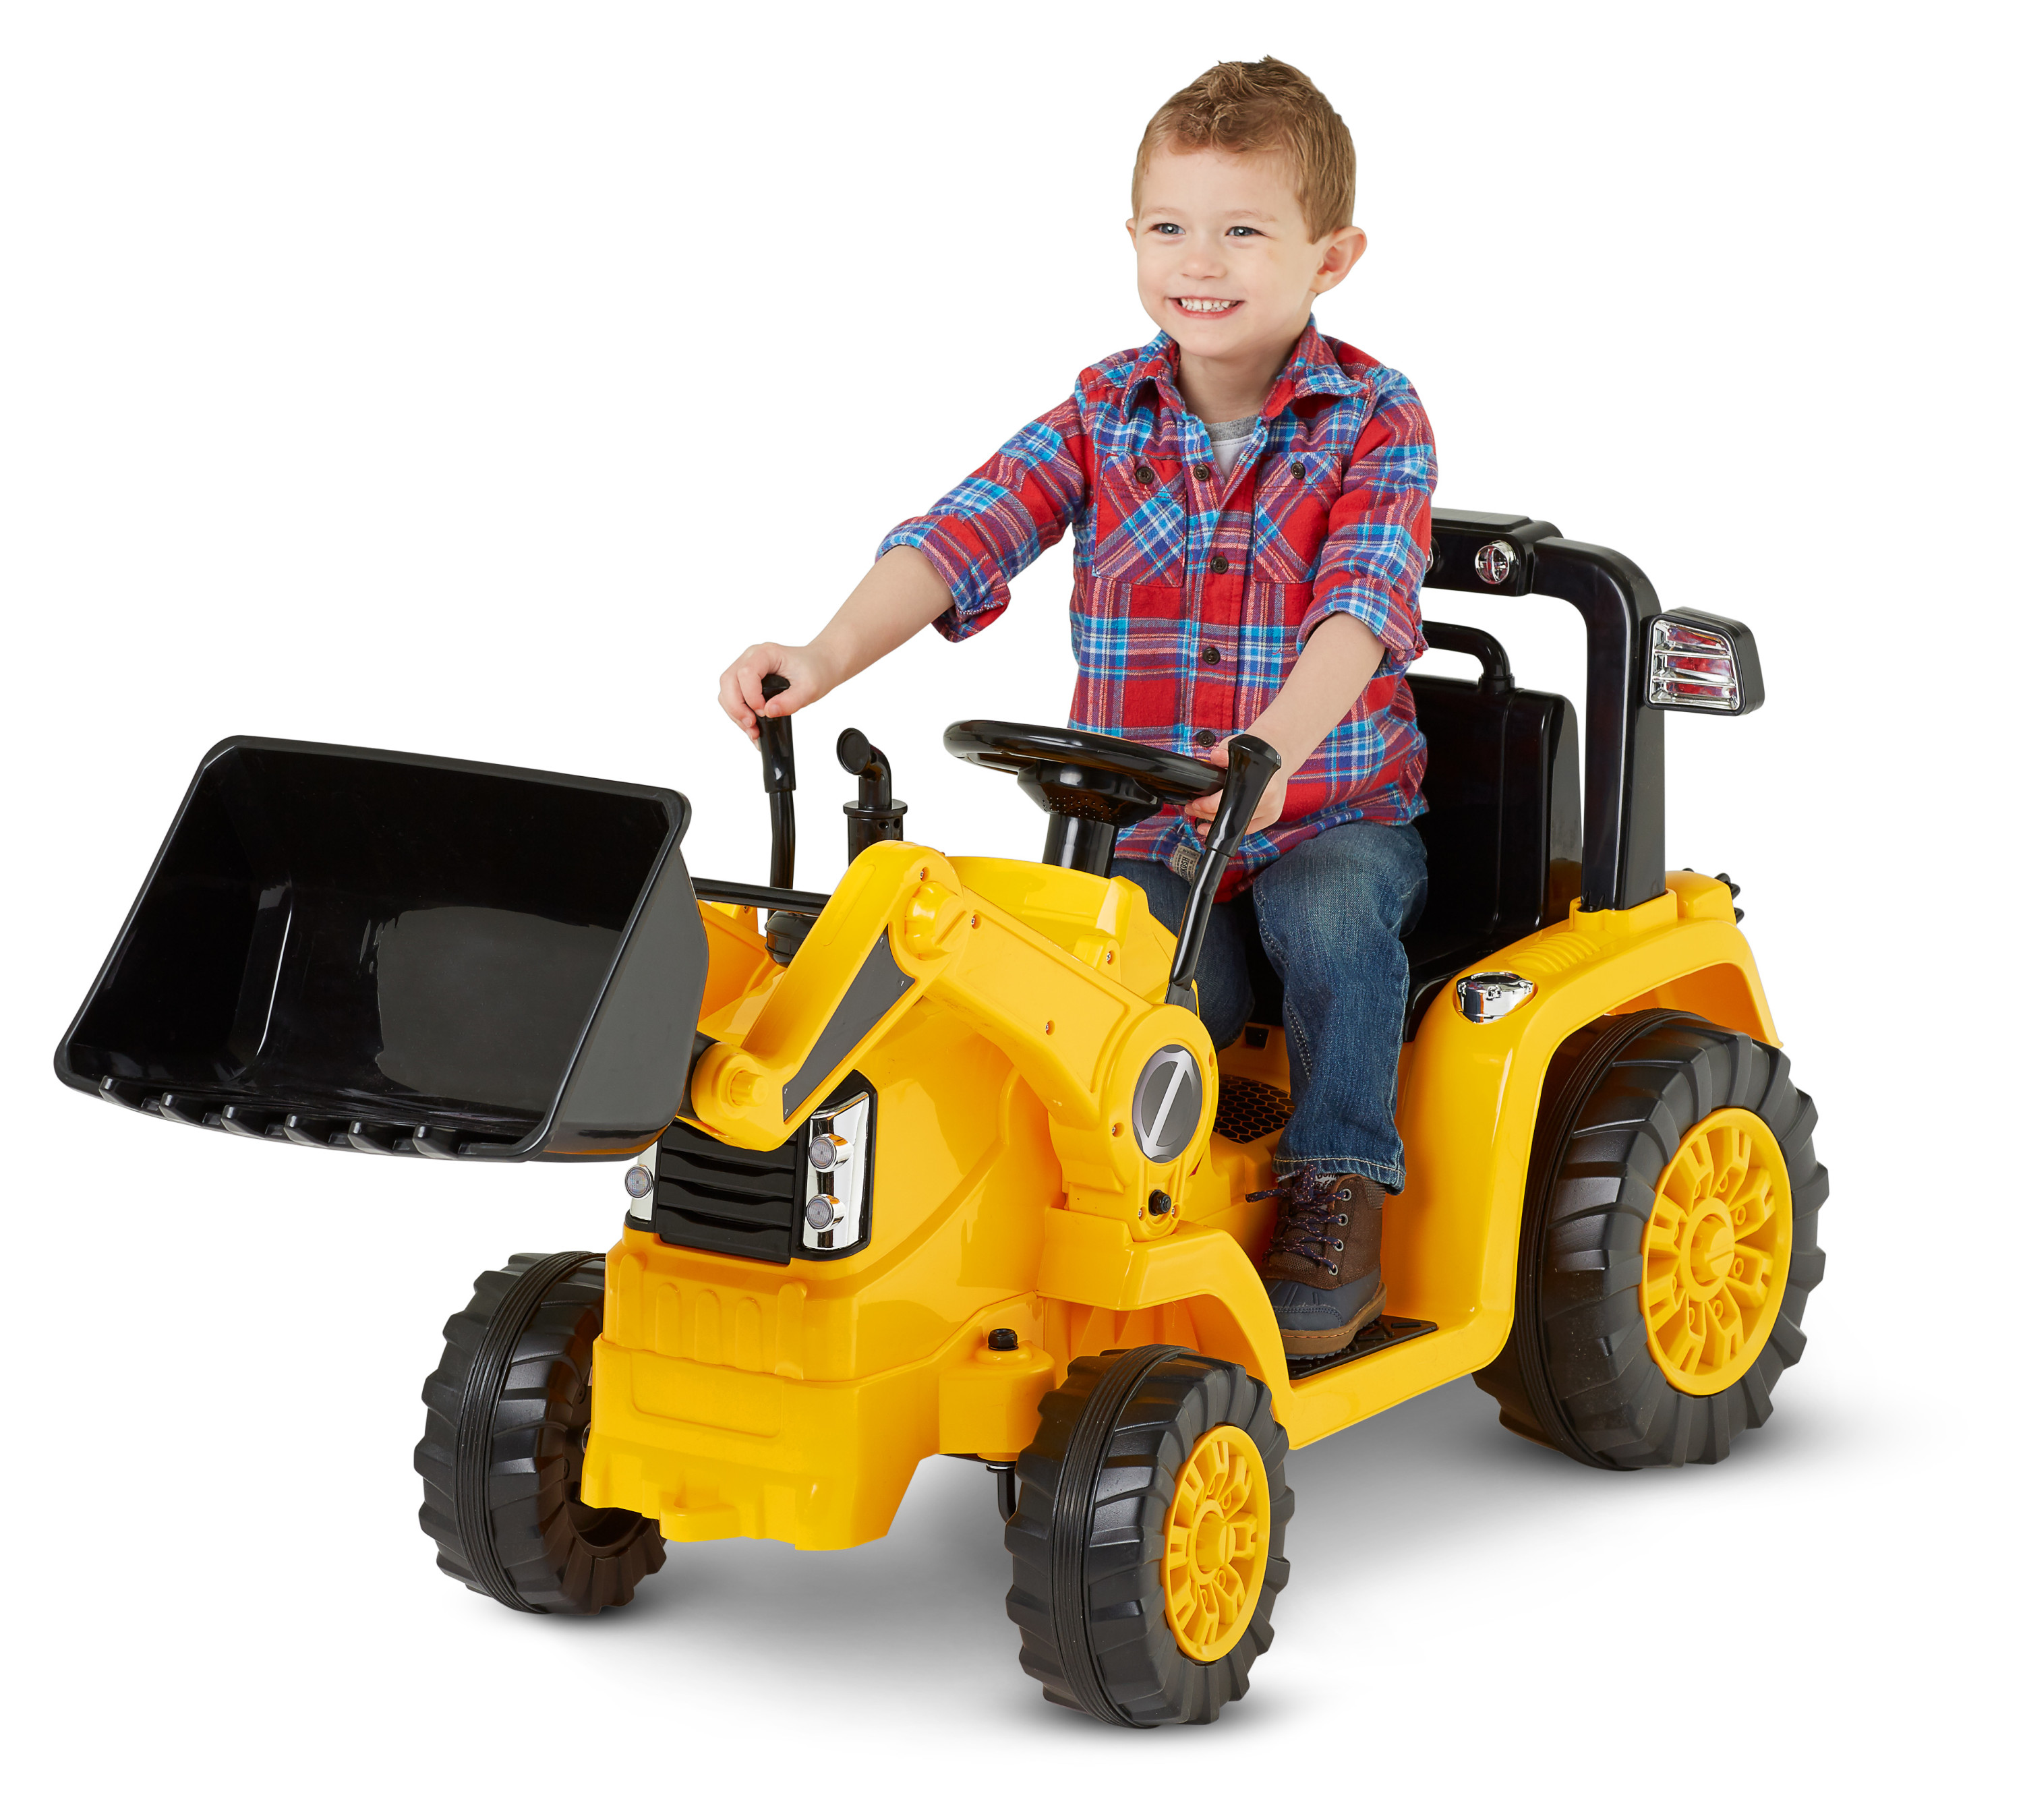 6V Battery Powered Kids Ride On Car Electric Excavator Digger Outdoor Play Toy